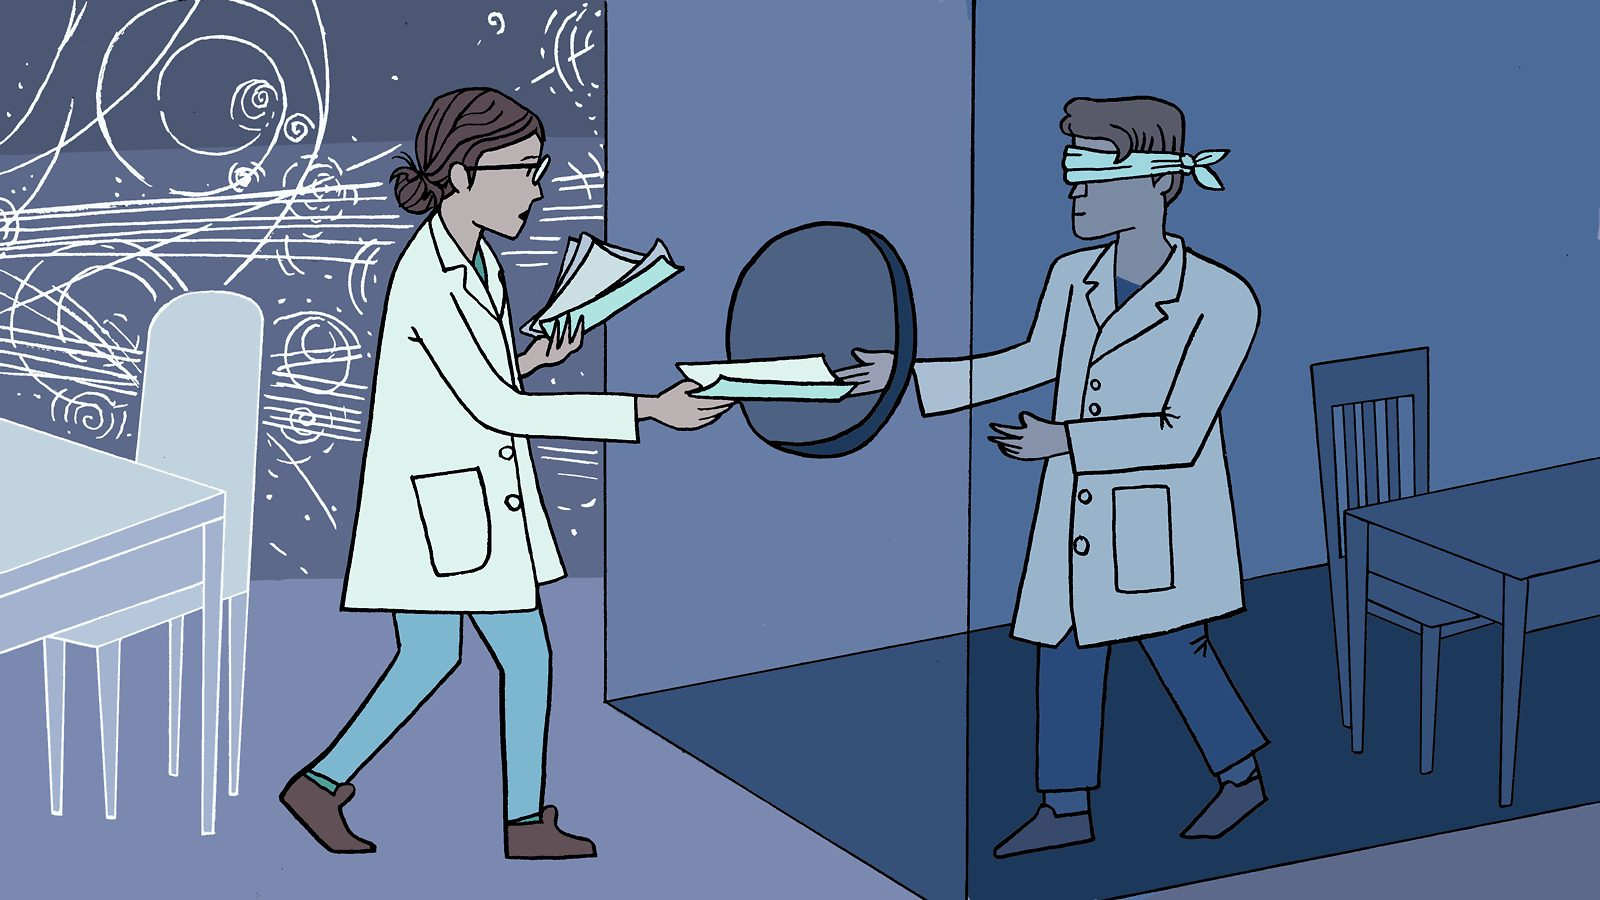 Illustration of a scientist handing papers to another, blindfolded scientist